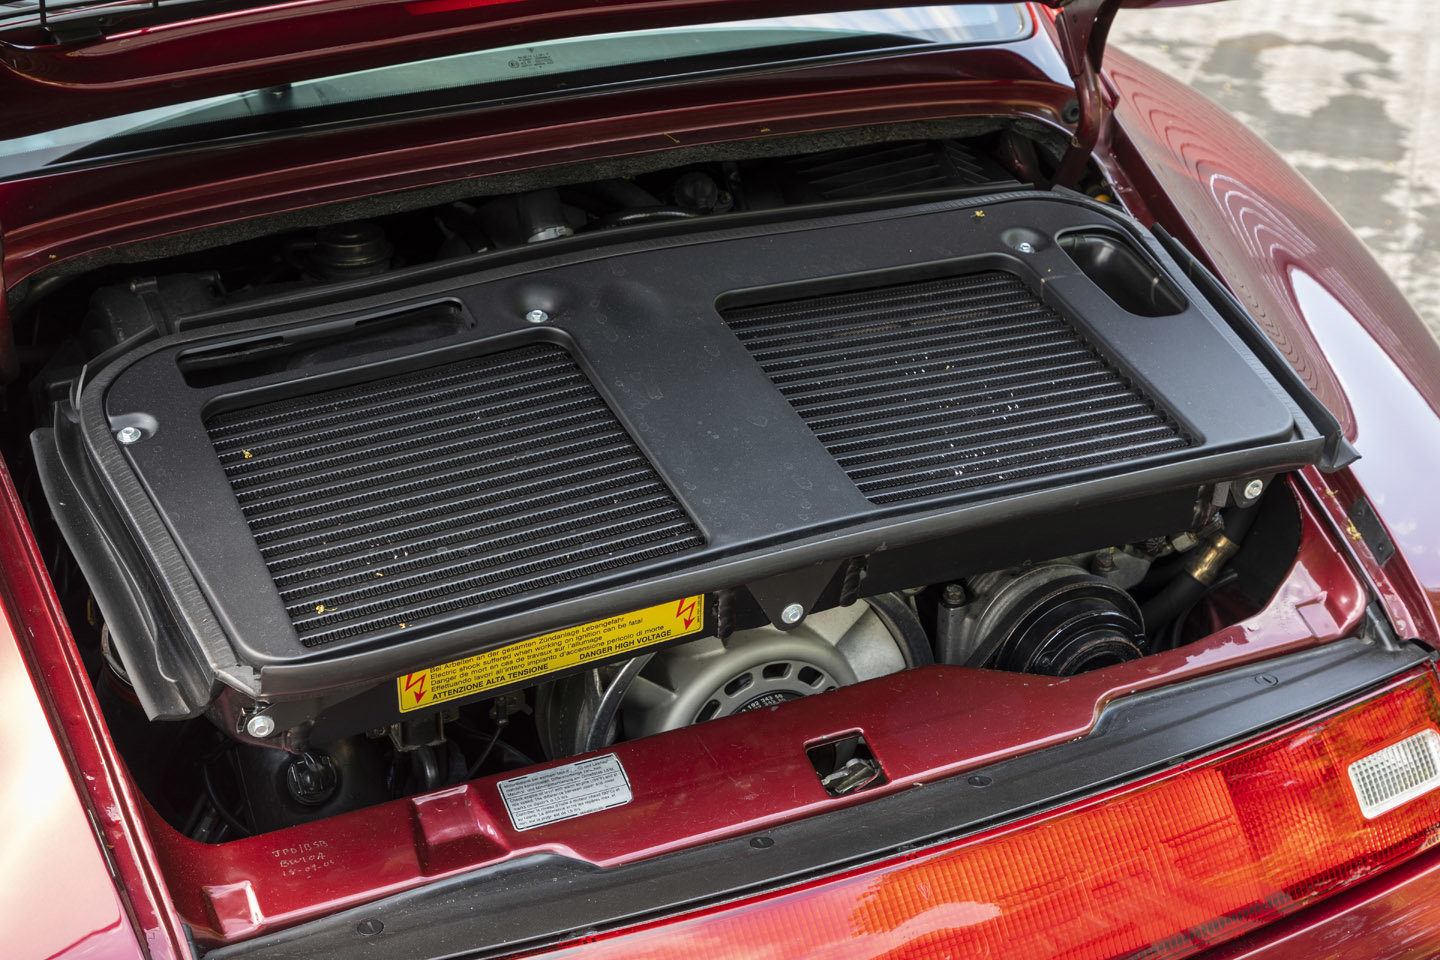 1995 PORSCHE 911 (993) TURBO ONLY UK CAR For Sale (picture 12 of 19)